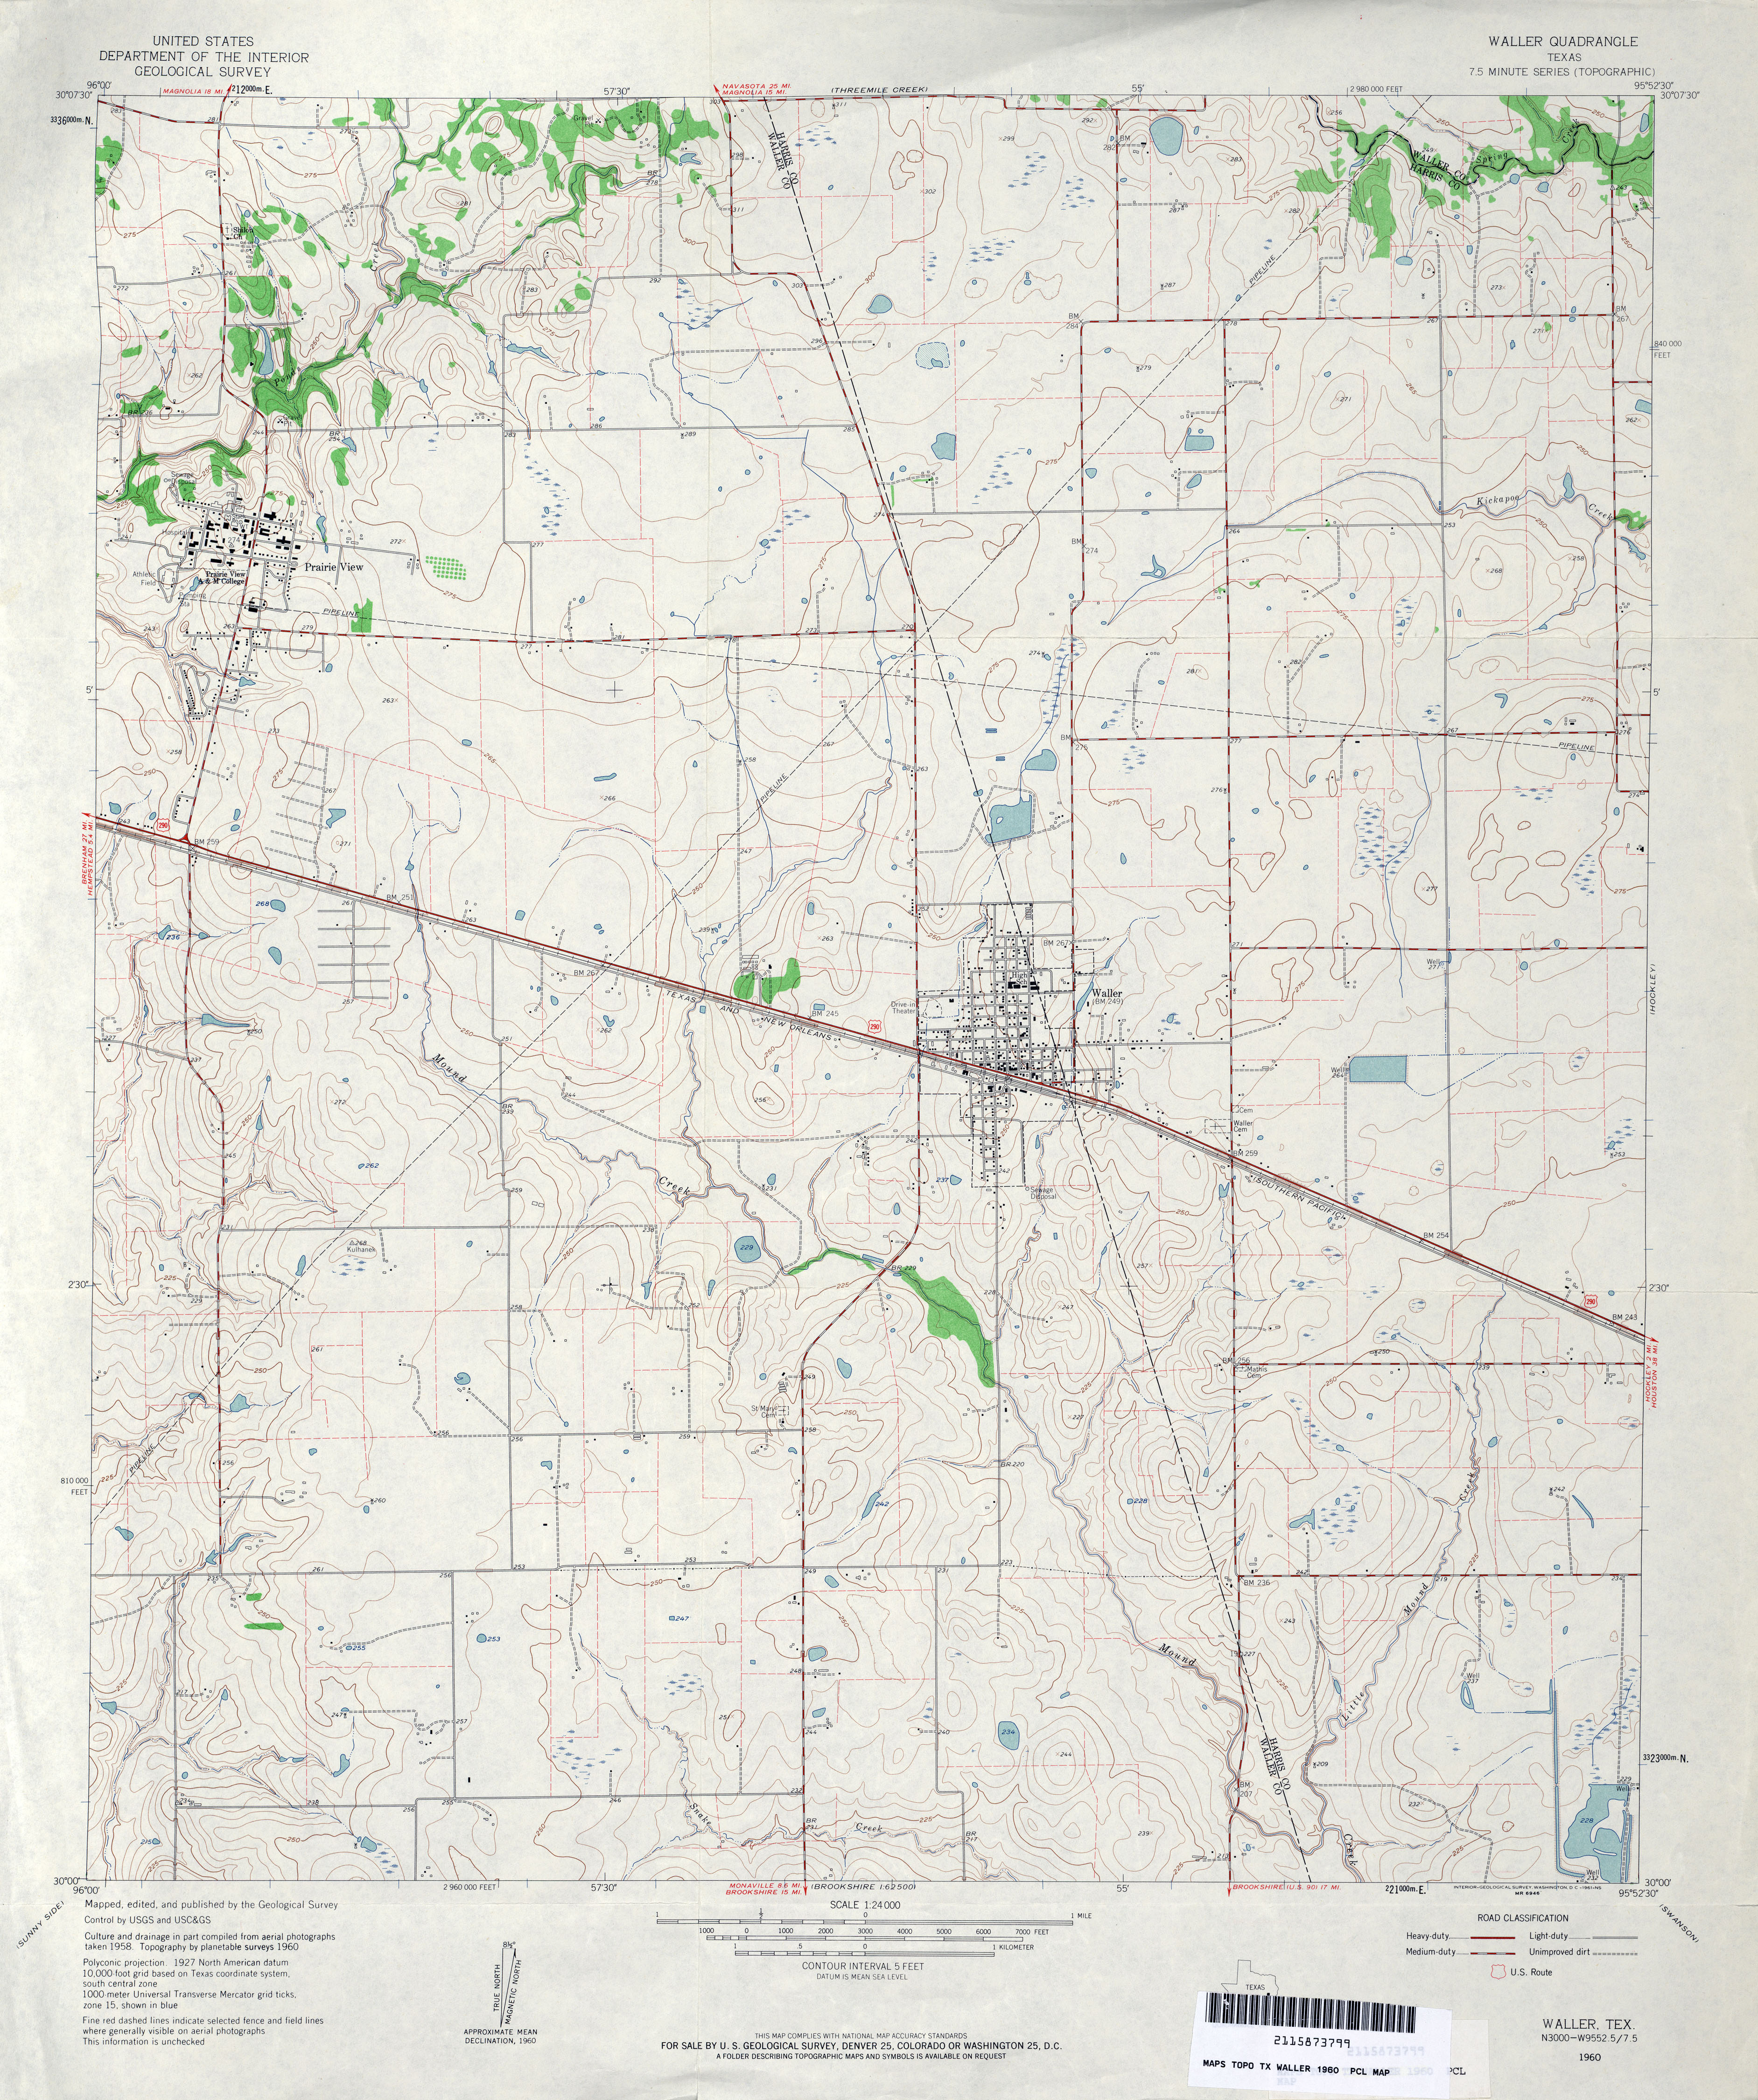 Texas Topographic Maps PerryCastañeda Map Collection UT - Waller tx map us